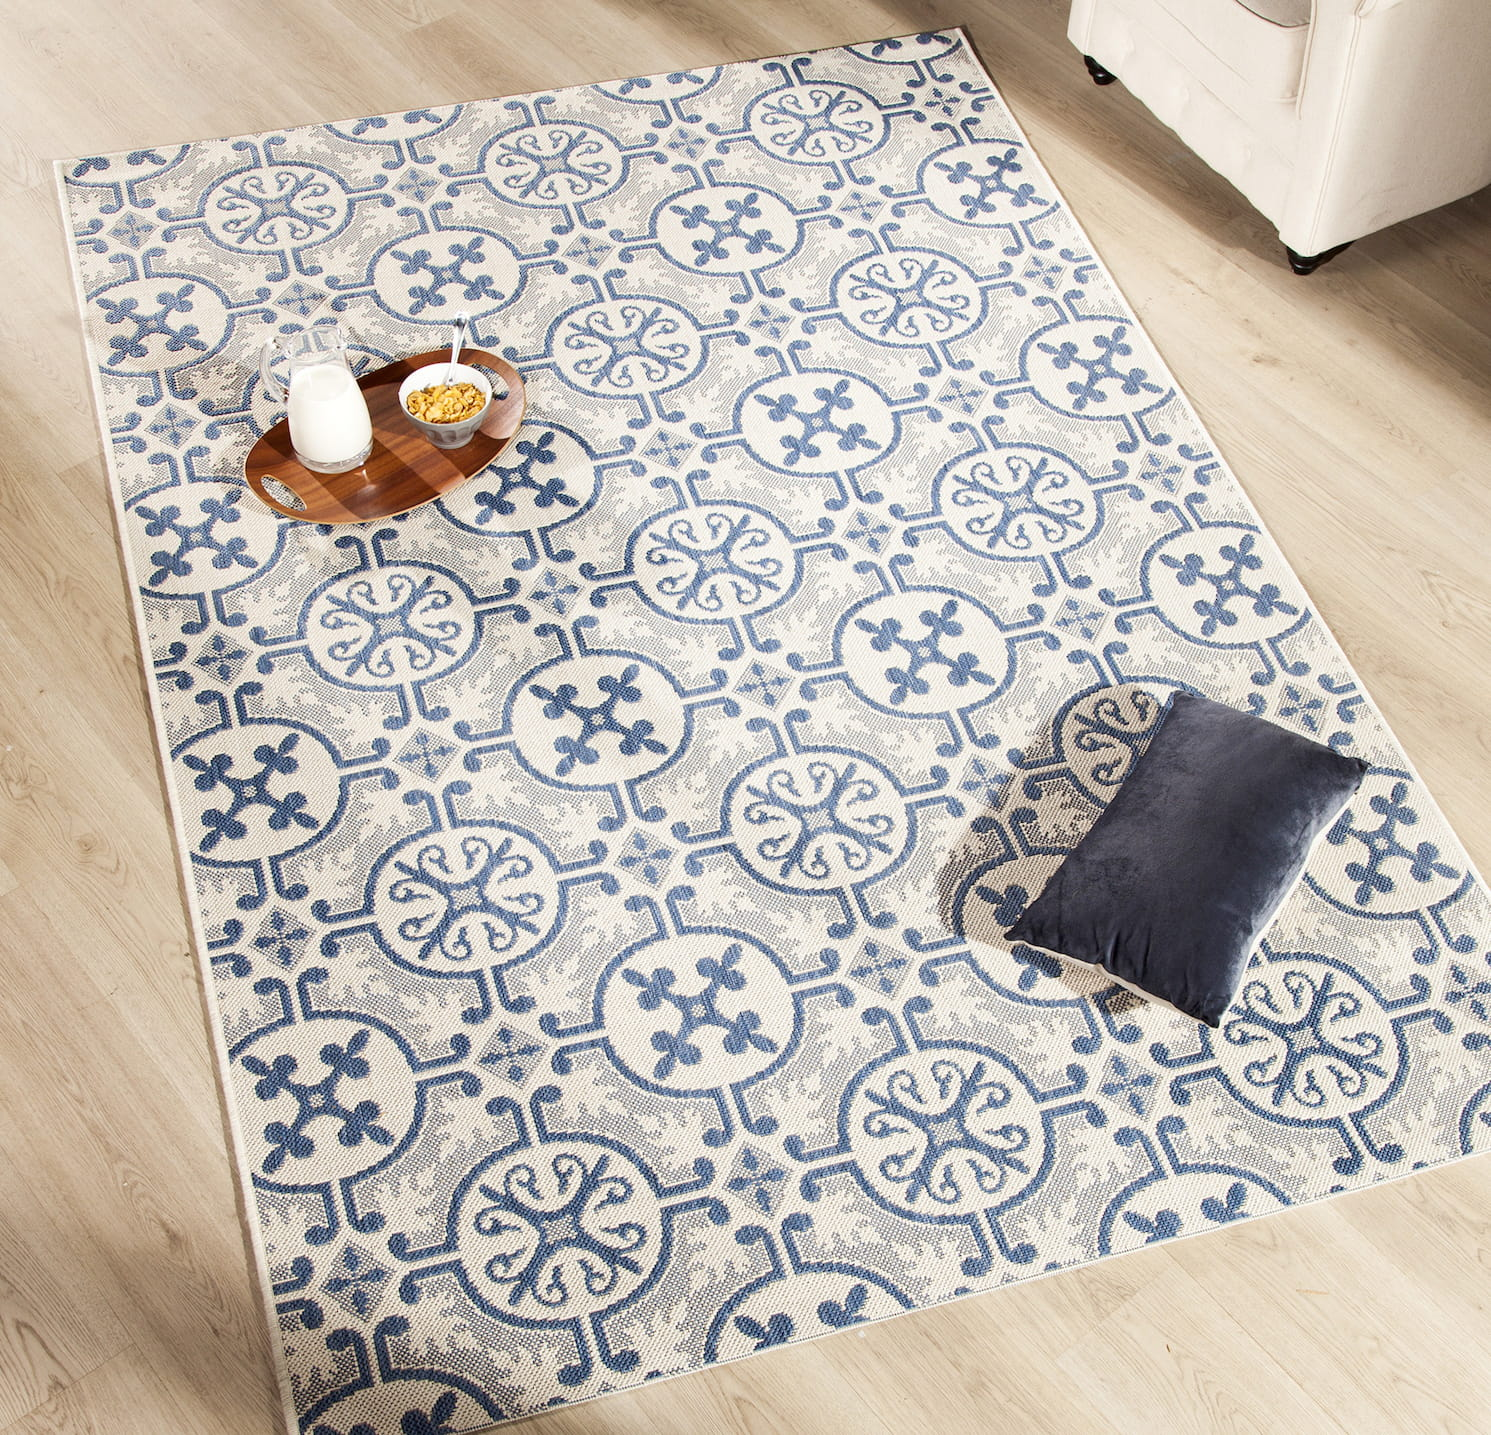 Carrelage design tapis carreaux de ciment moderne for Carreaux de ciment occasion